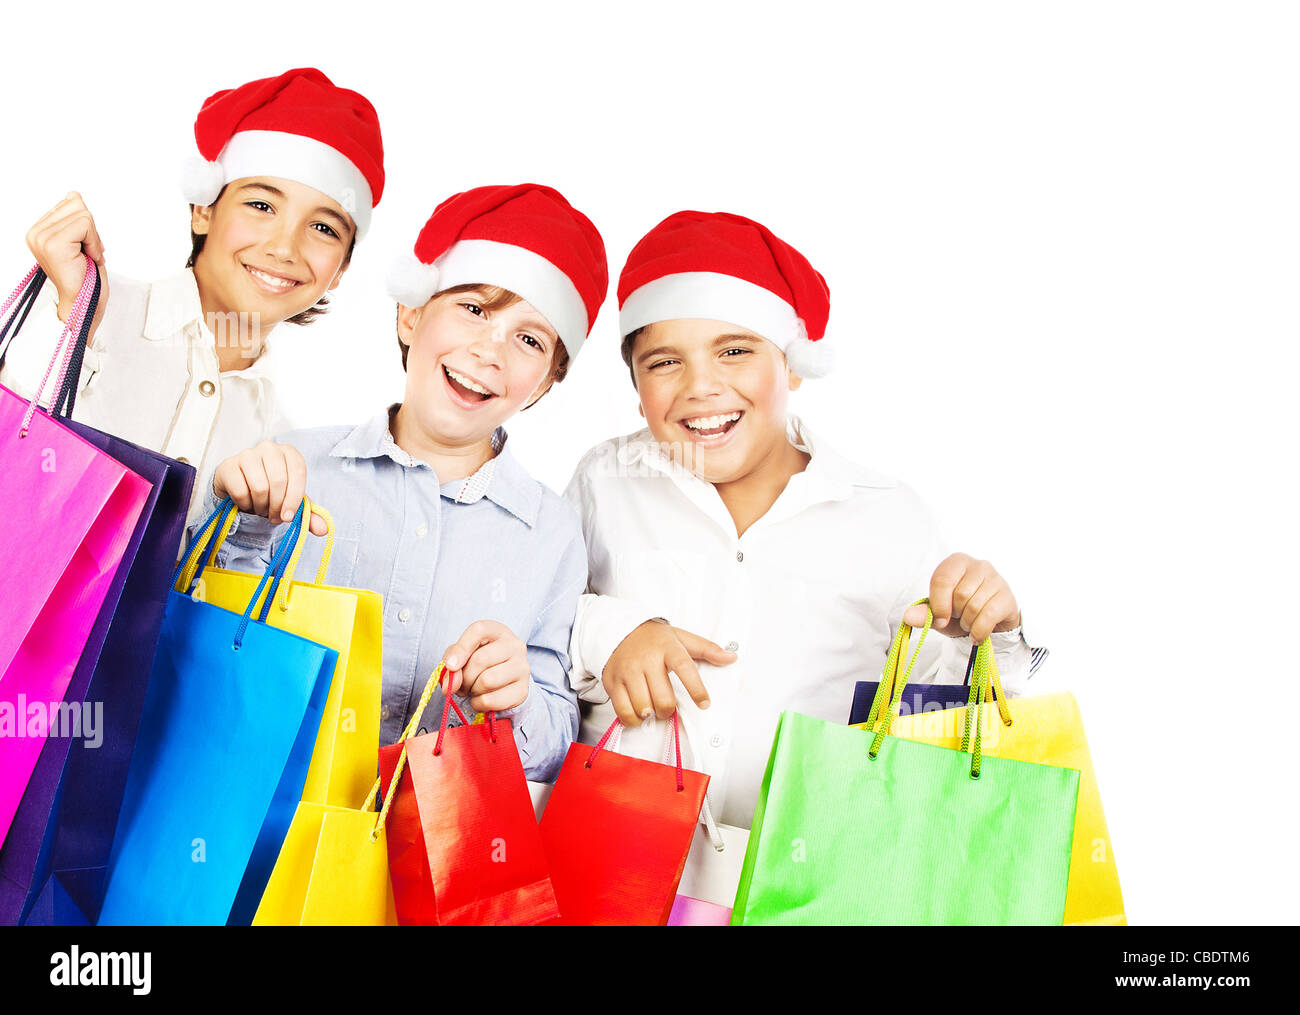 Colorful Christmas Background For Kids.Happy Santa Boys With Gifts Kids Carrying Colorful Shopping